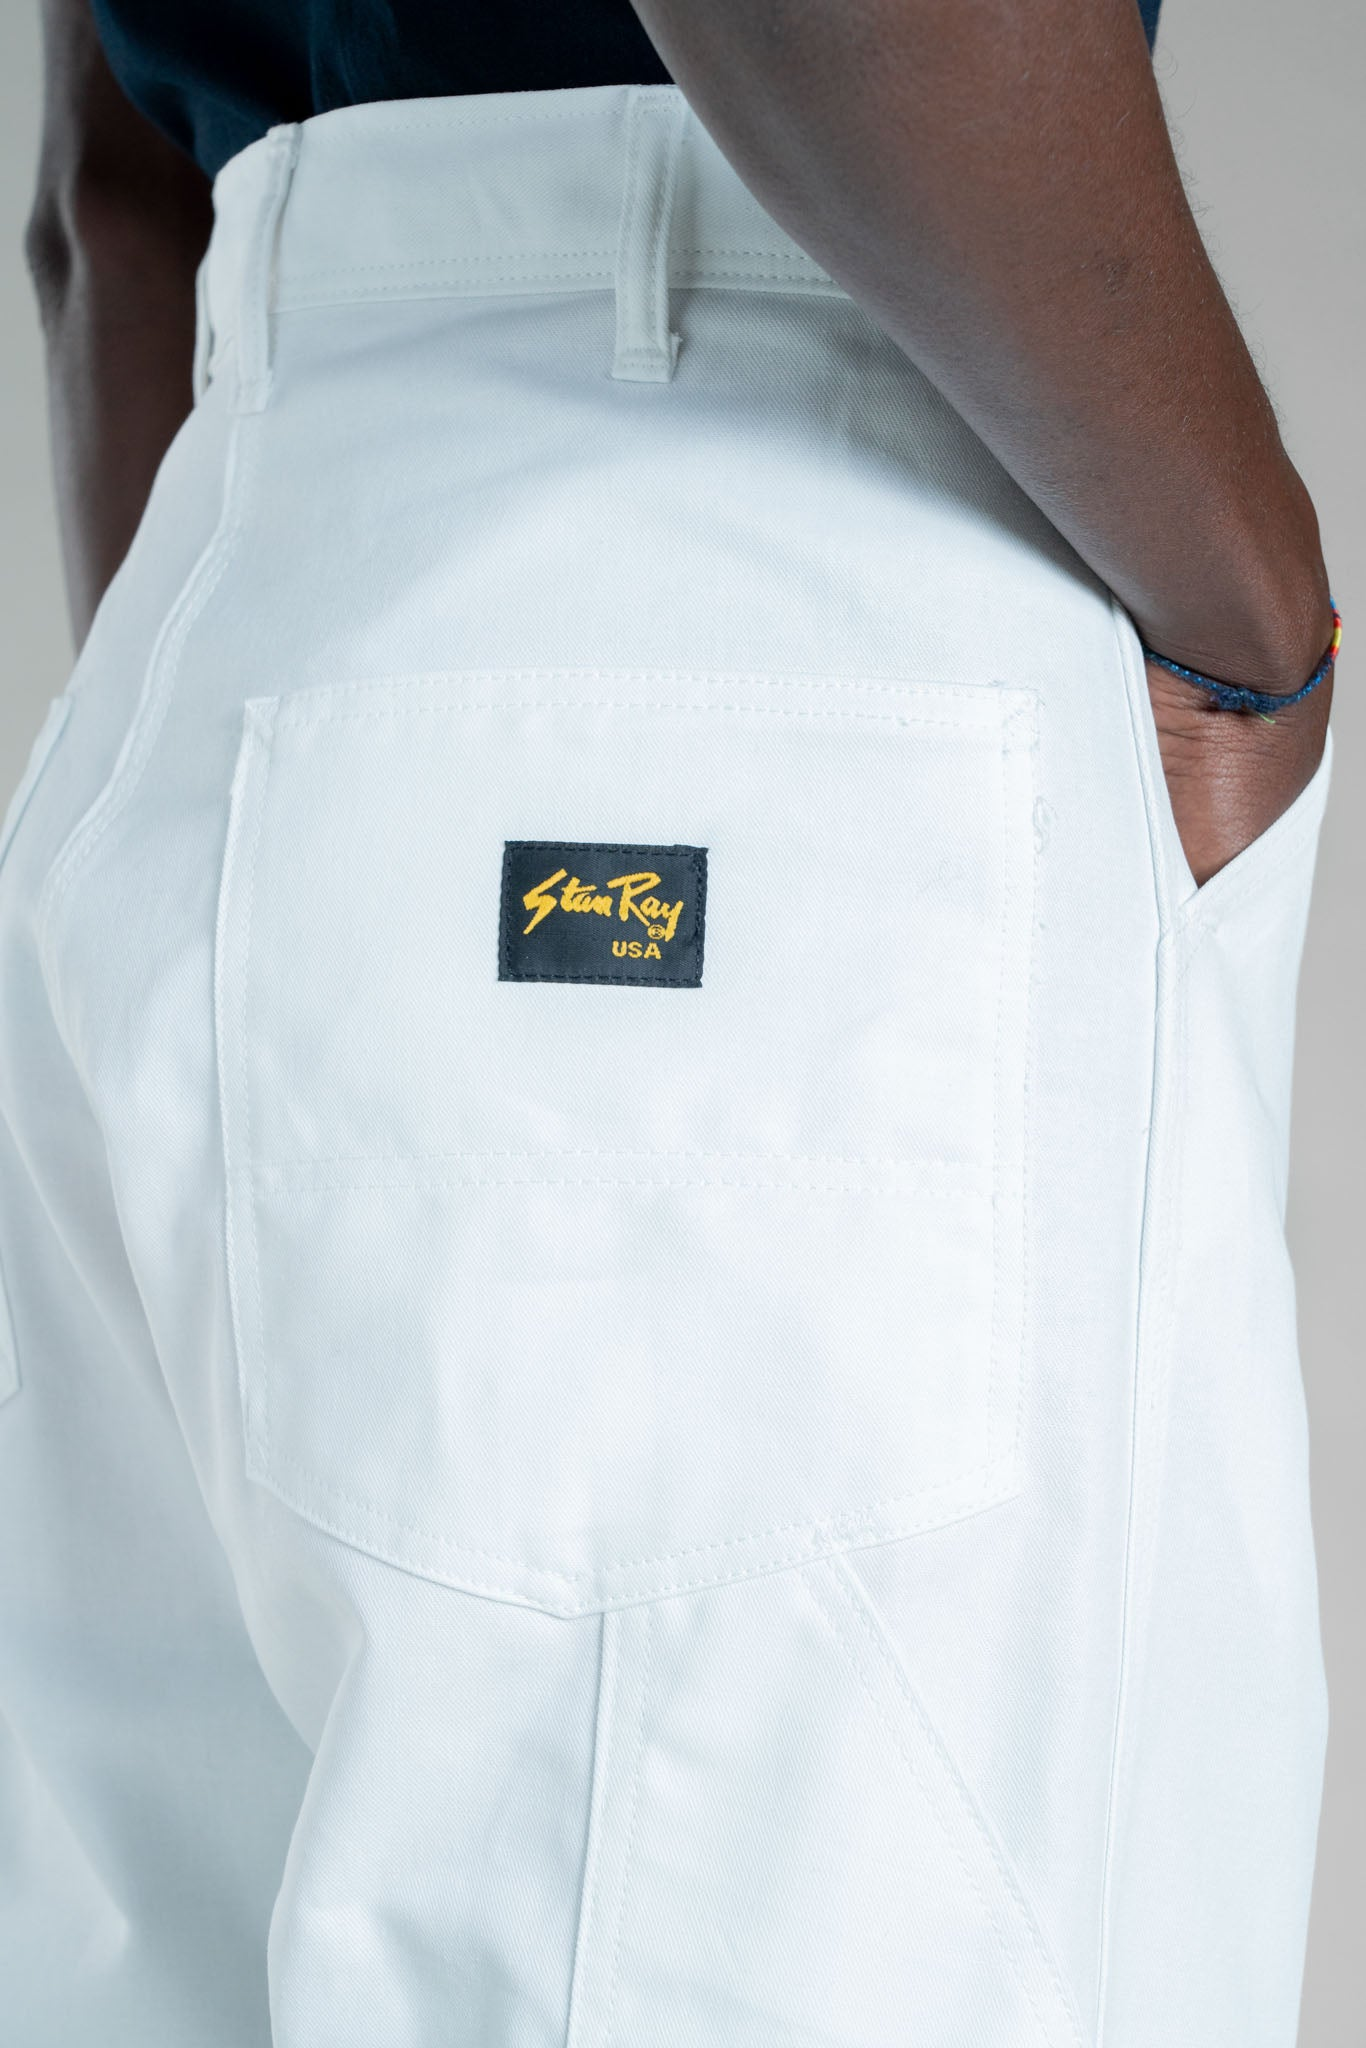 OG Painter Pant (White Drill) - Stan Ray